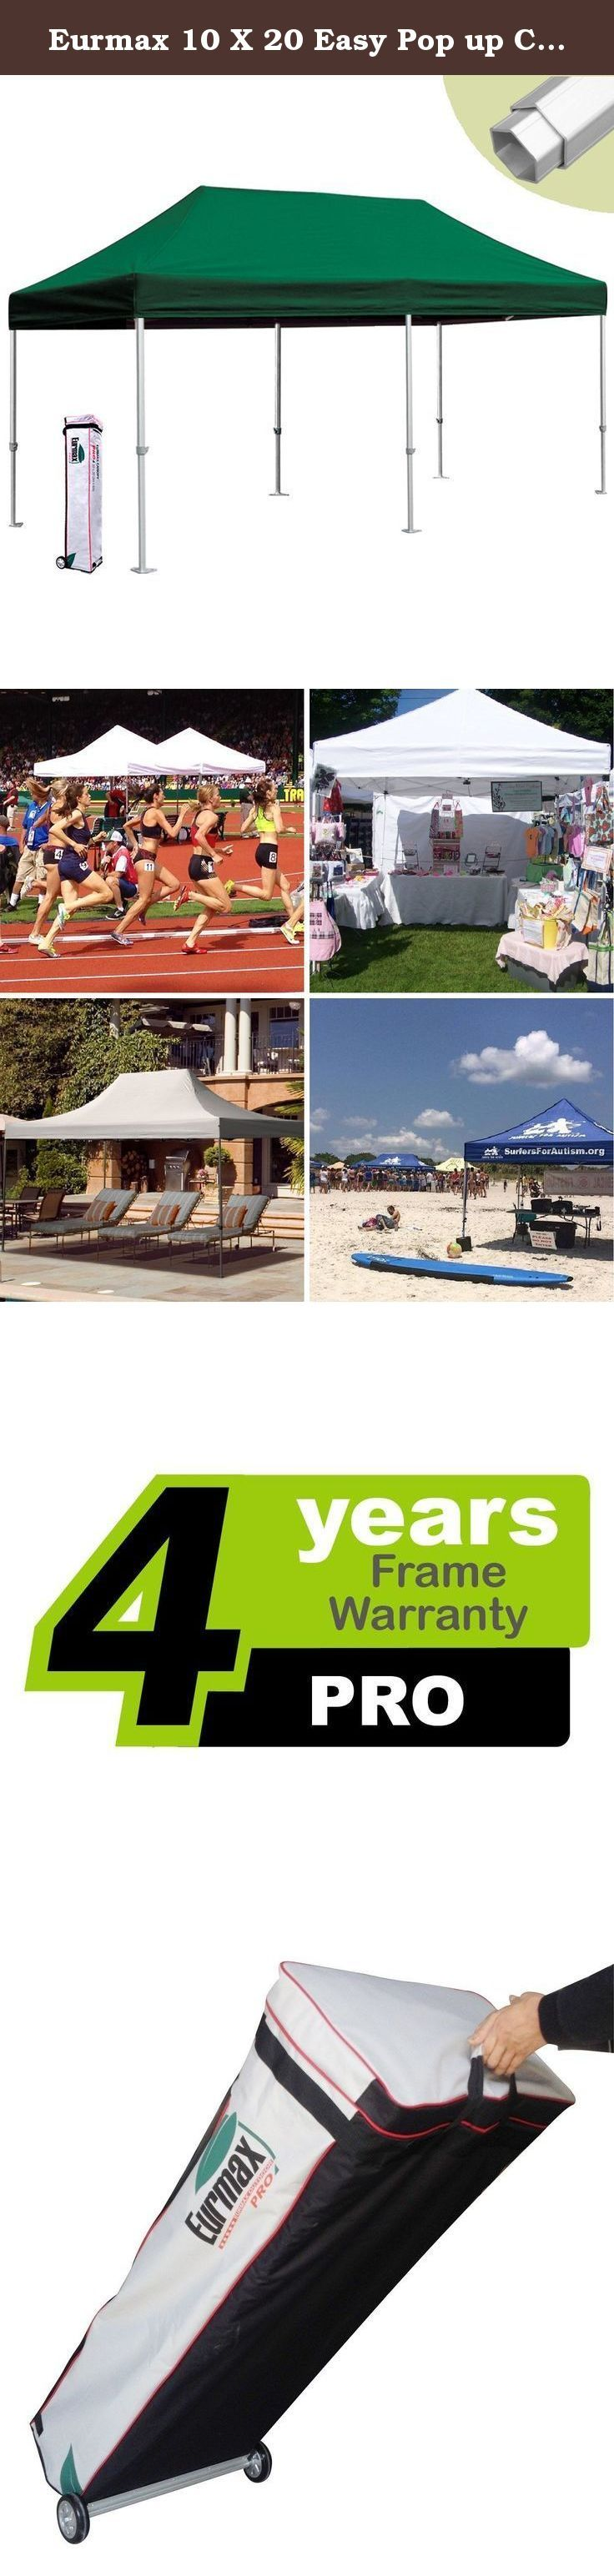 """Eurmax 10 X 20 Easy Pop up Canopy Carport Wedding Party Tent with Roller Bag (Forest). Eurmax New PRO easy pop-up canopy is our high commercial level canopy with Full Aluminum frame, it can be quickly erected by two people without any tools. The canopy is light in weight and high in quality. we have 3 sizes available and 19 colors for your choice. this portable canopy comes with a super wheeled bag with two 4.7"""" wheels which can handle well even on rough ground. One important reason for..."""